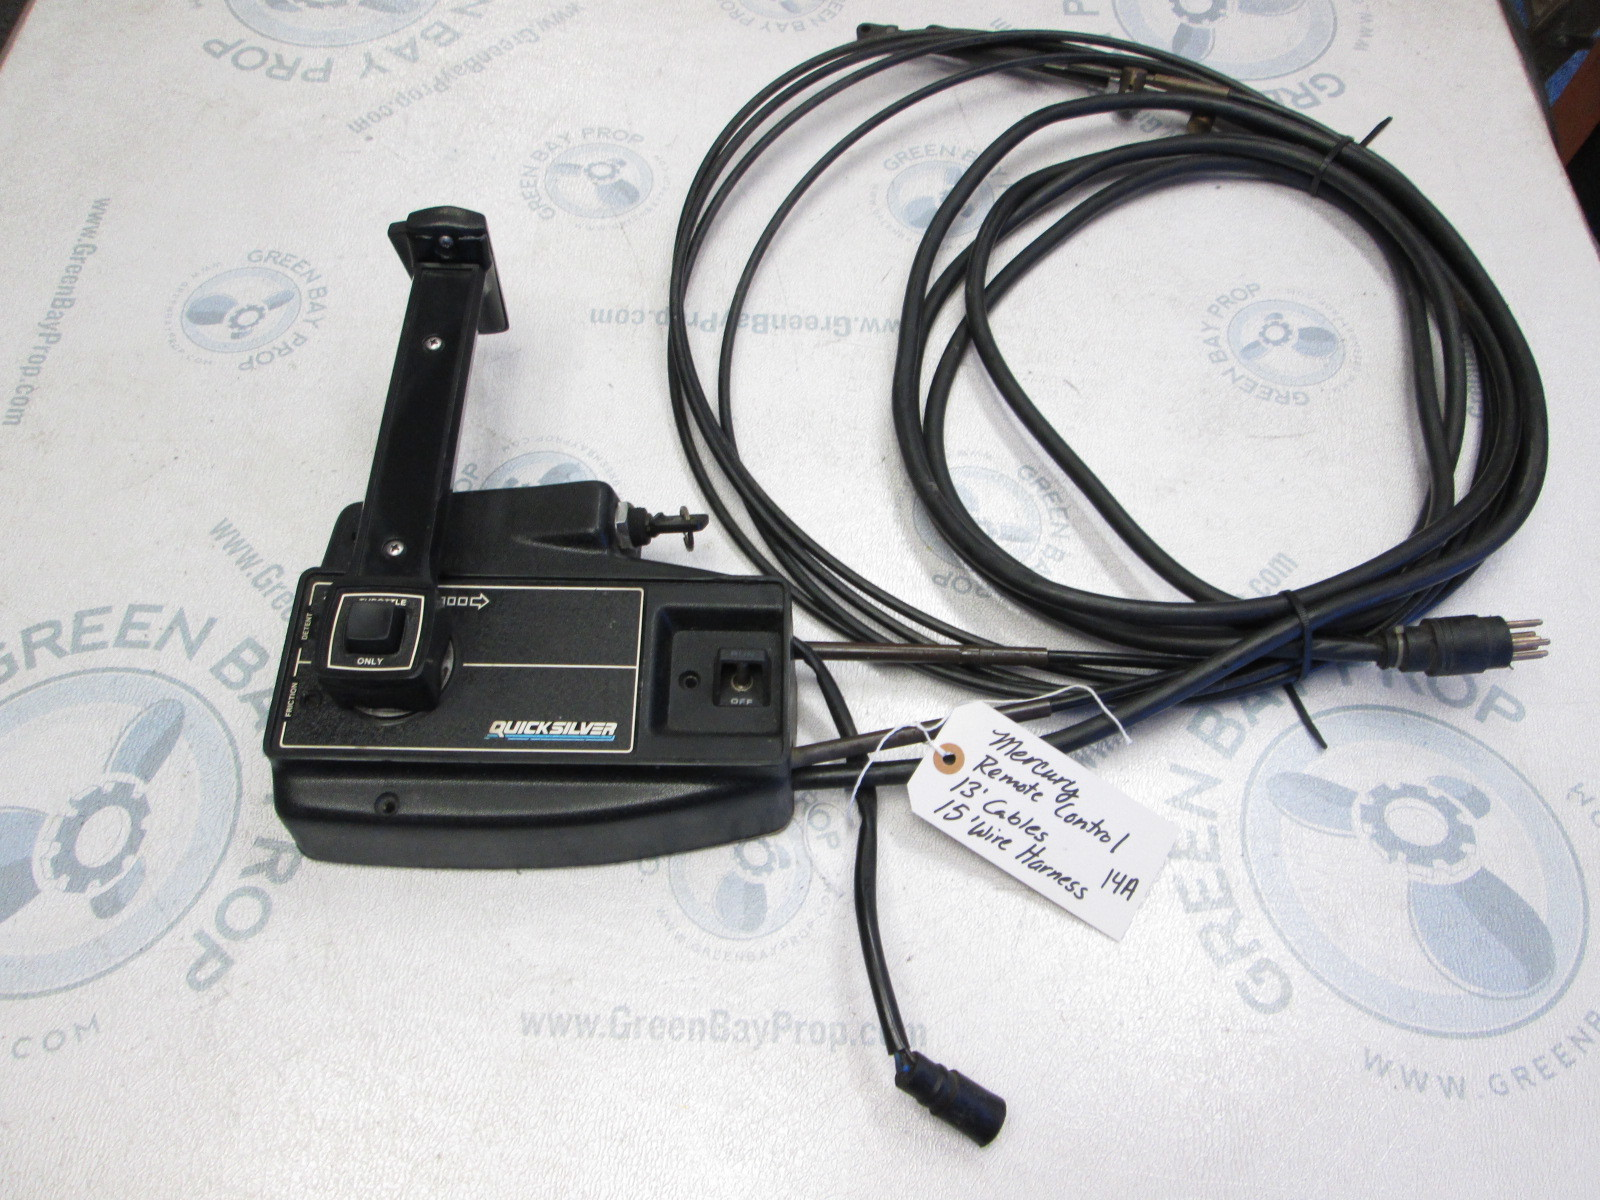 Remote throttle control outboard motor